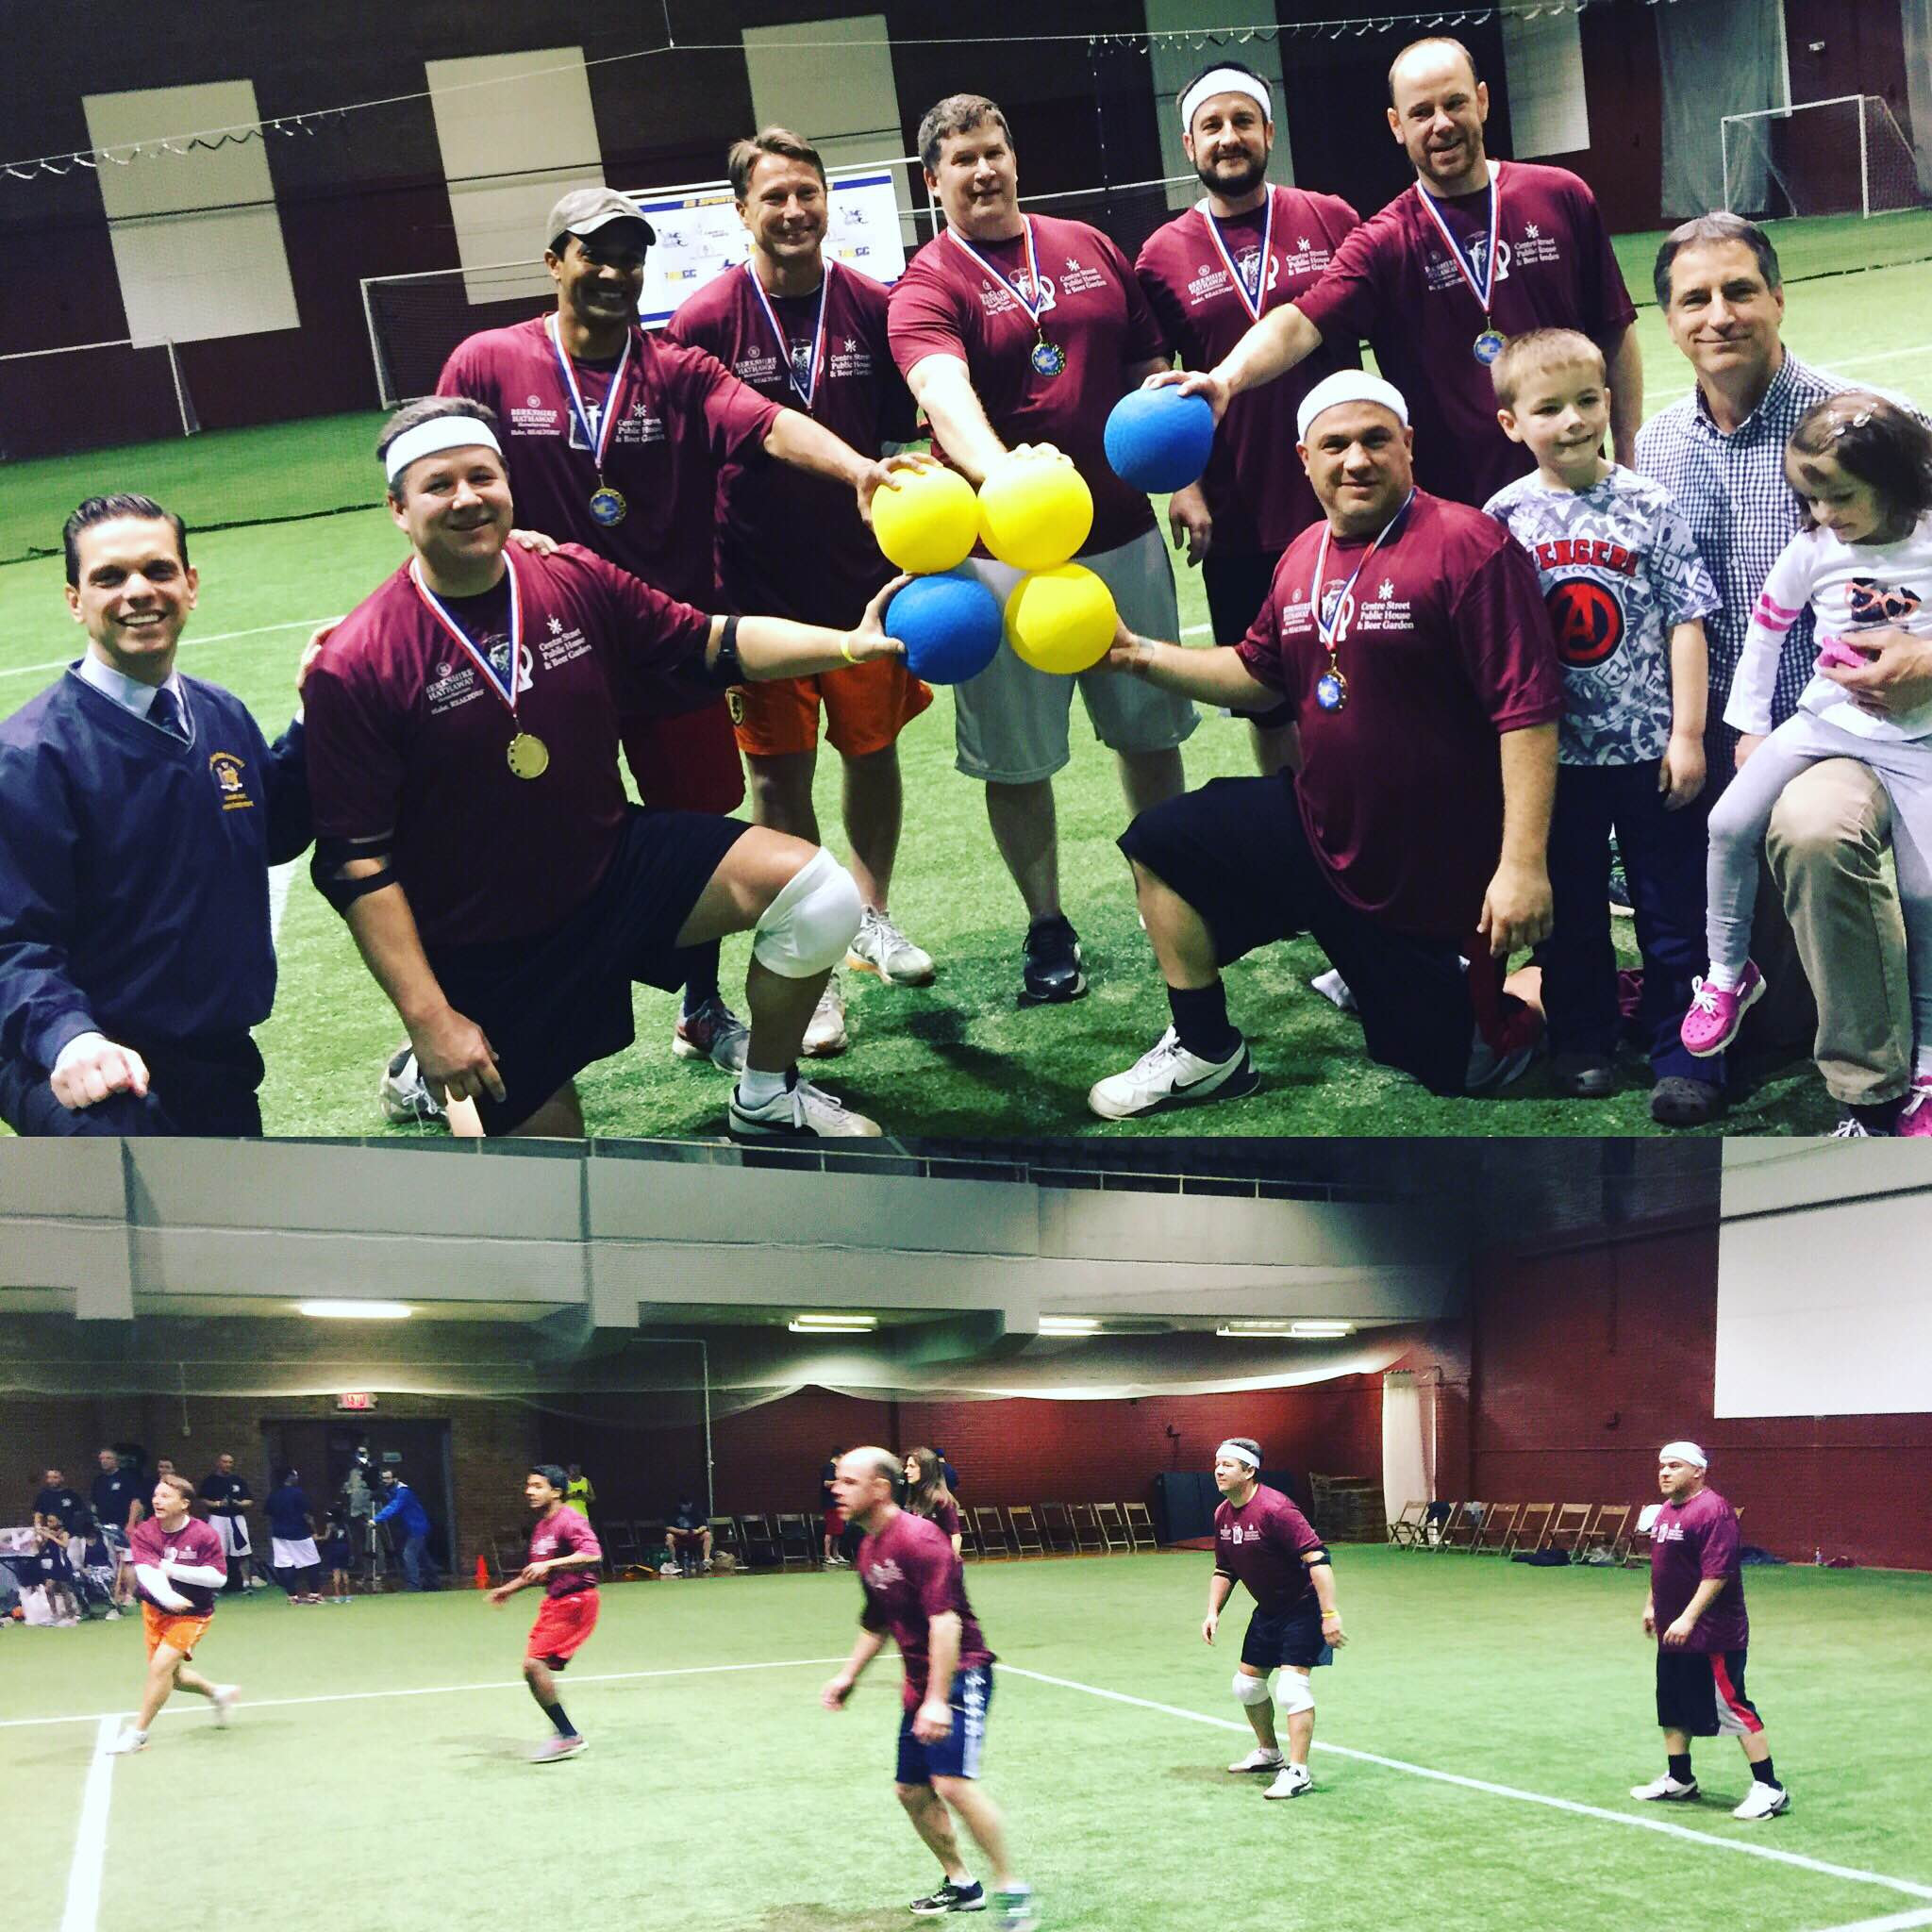 Team Blake and Centre Street Pub win 2016 dodgeball competition at Schenectady Armory on Saturday 4.16. The tournament was sponsored by the Empire State Sports Council. Learn more about  ESSC  here. Times Union article  here.